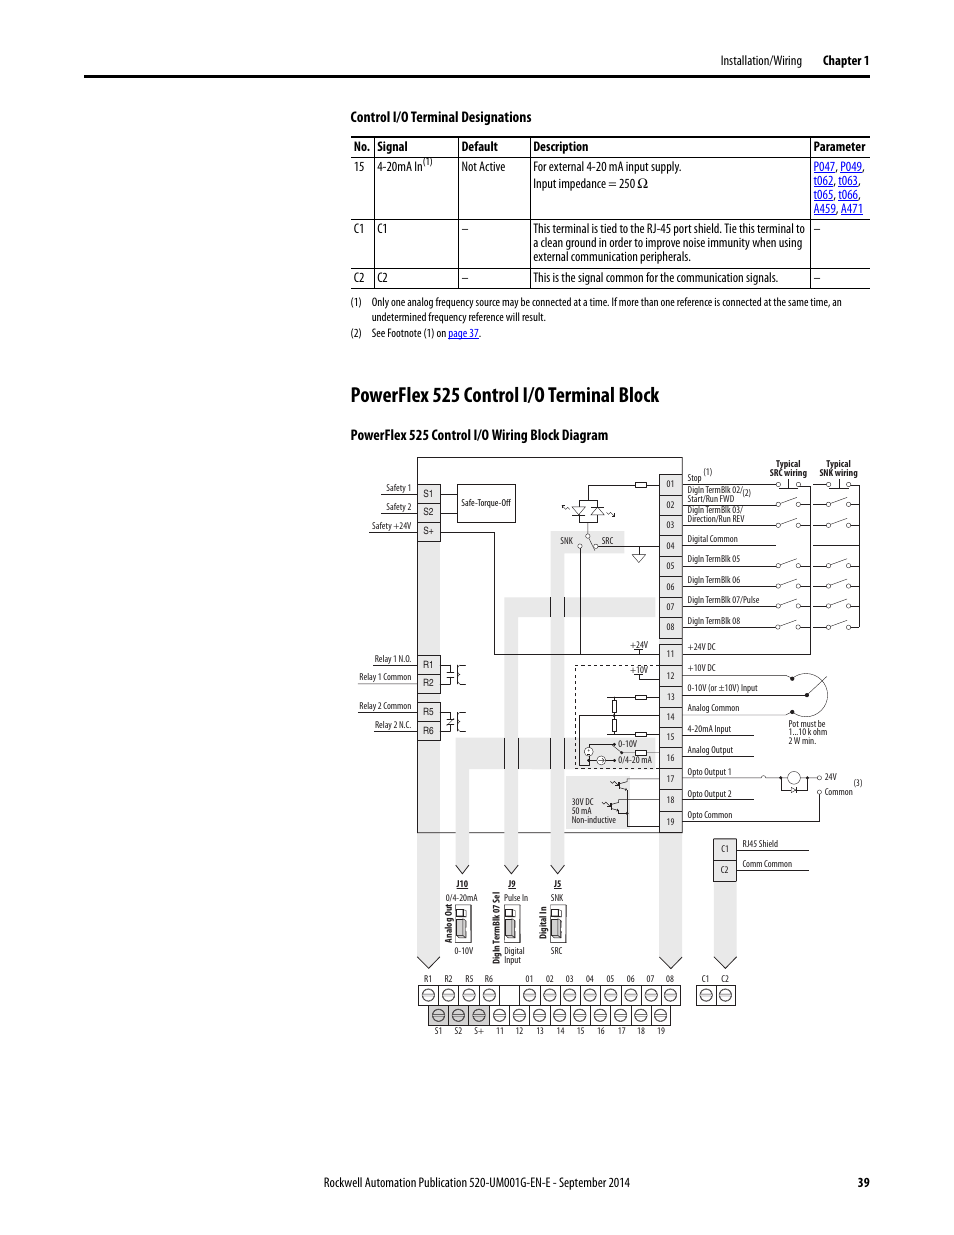 rockwell automation 25b powerflex 520 series adjustable frequency ac drive user manual page39 powerflex 525 control i o terminal block, powerflex 525 control i powerflex 40 wiring diagram at bayanpartner.co